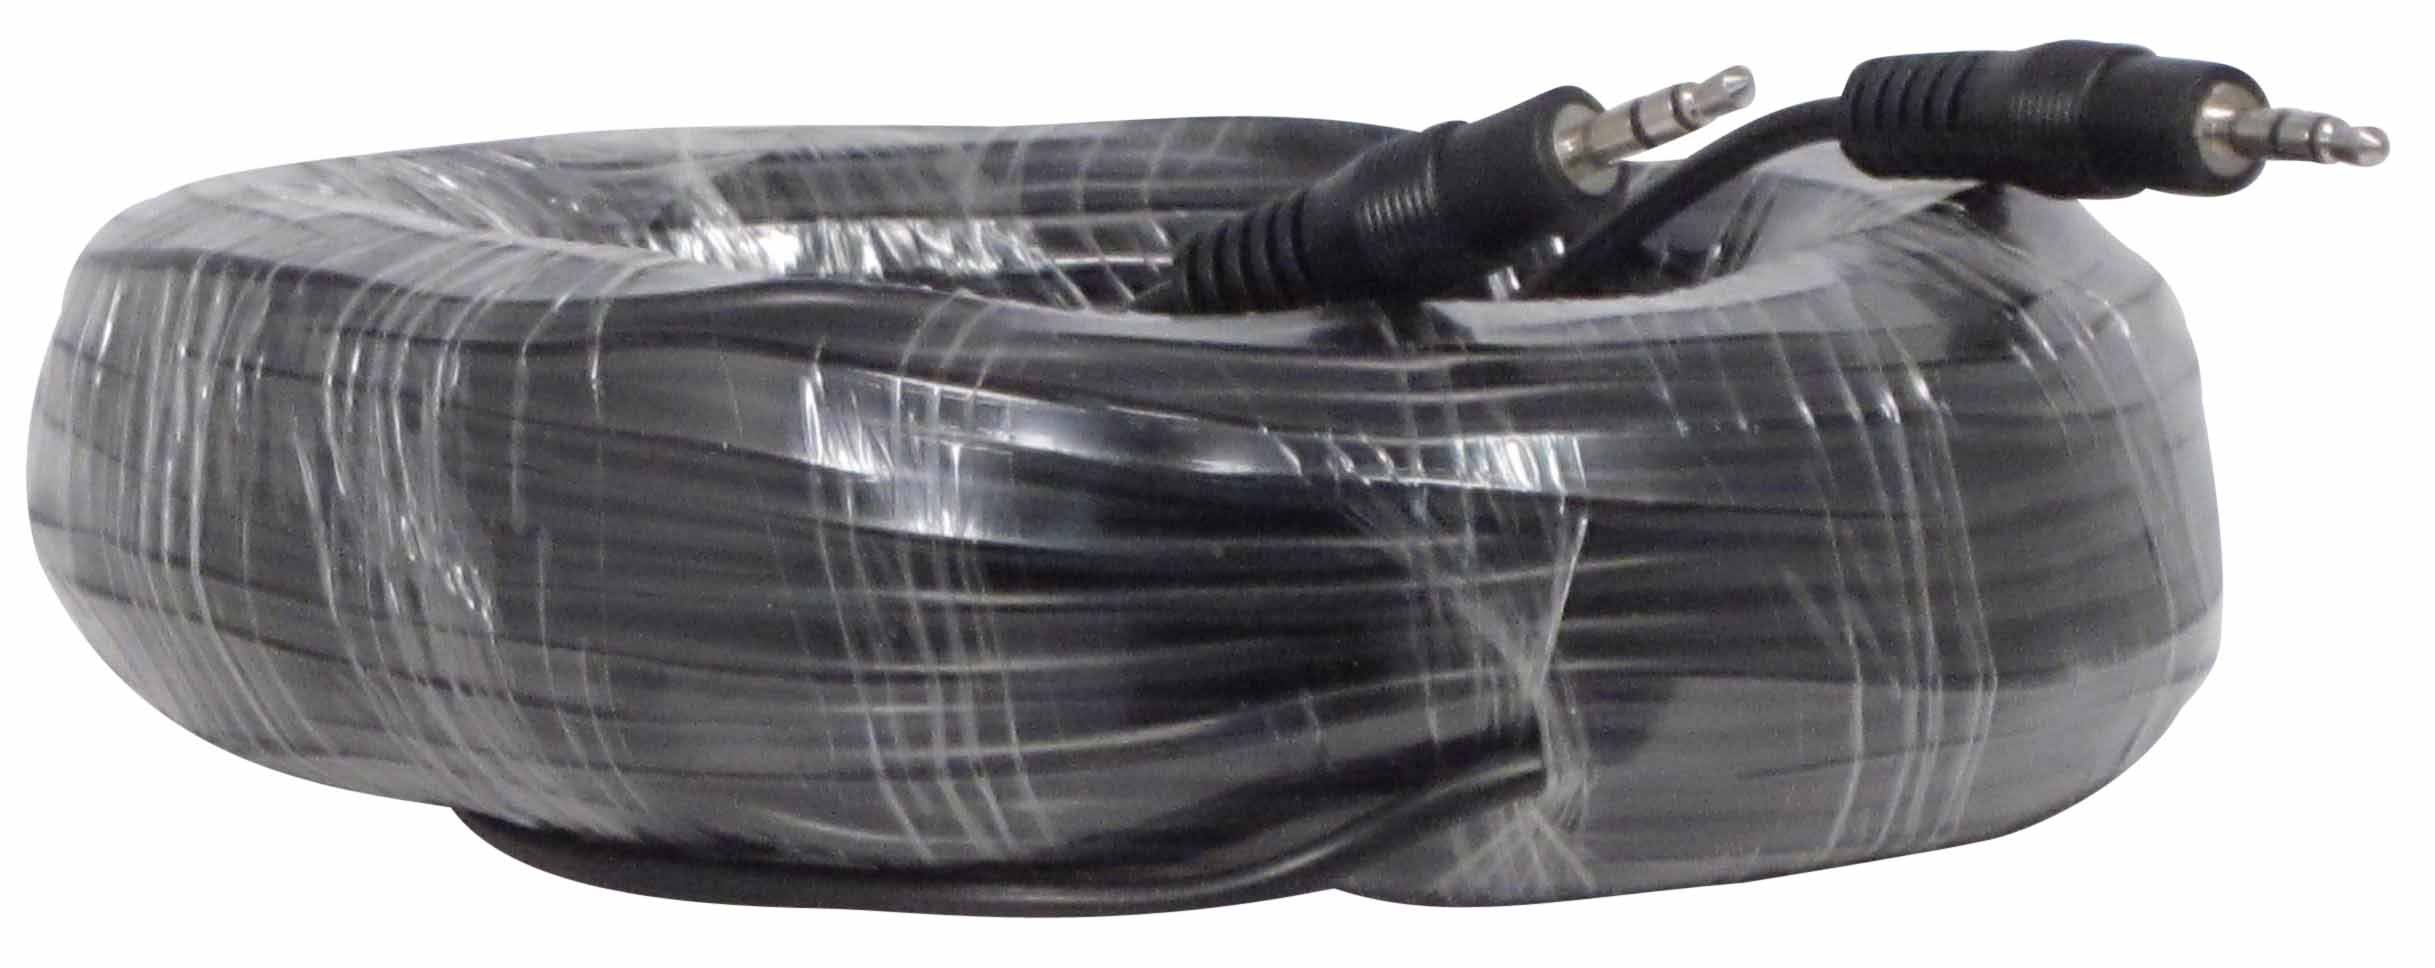 YCS Basics 100 Foot 3.5mm Stereo Male to Male Stereo Audio Headphone / Phone / MP3 Cable- For Your Car AUX Port, iPhone, iPod, Smartphone, Tablet by YCS basics